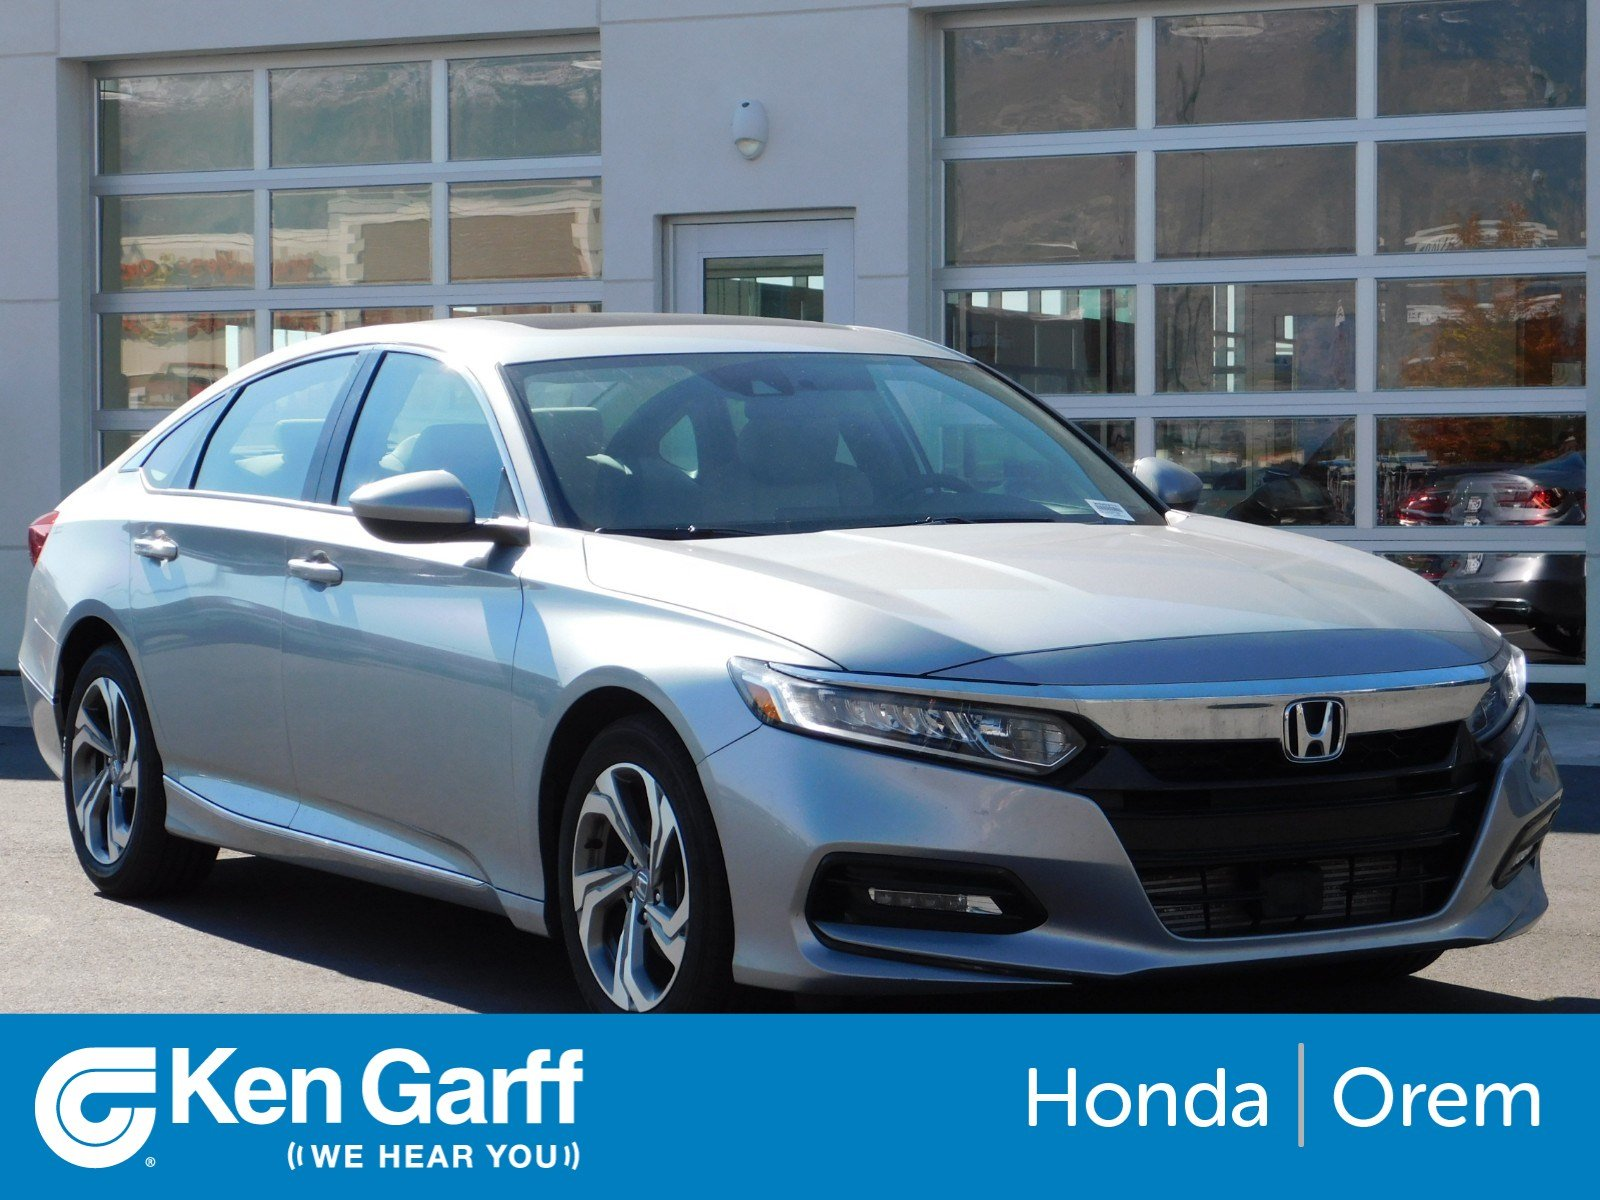 Certified Pre Owned 2018 Honda Accord Sedan EX 1.5T